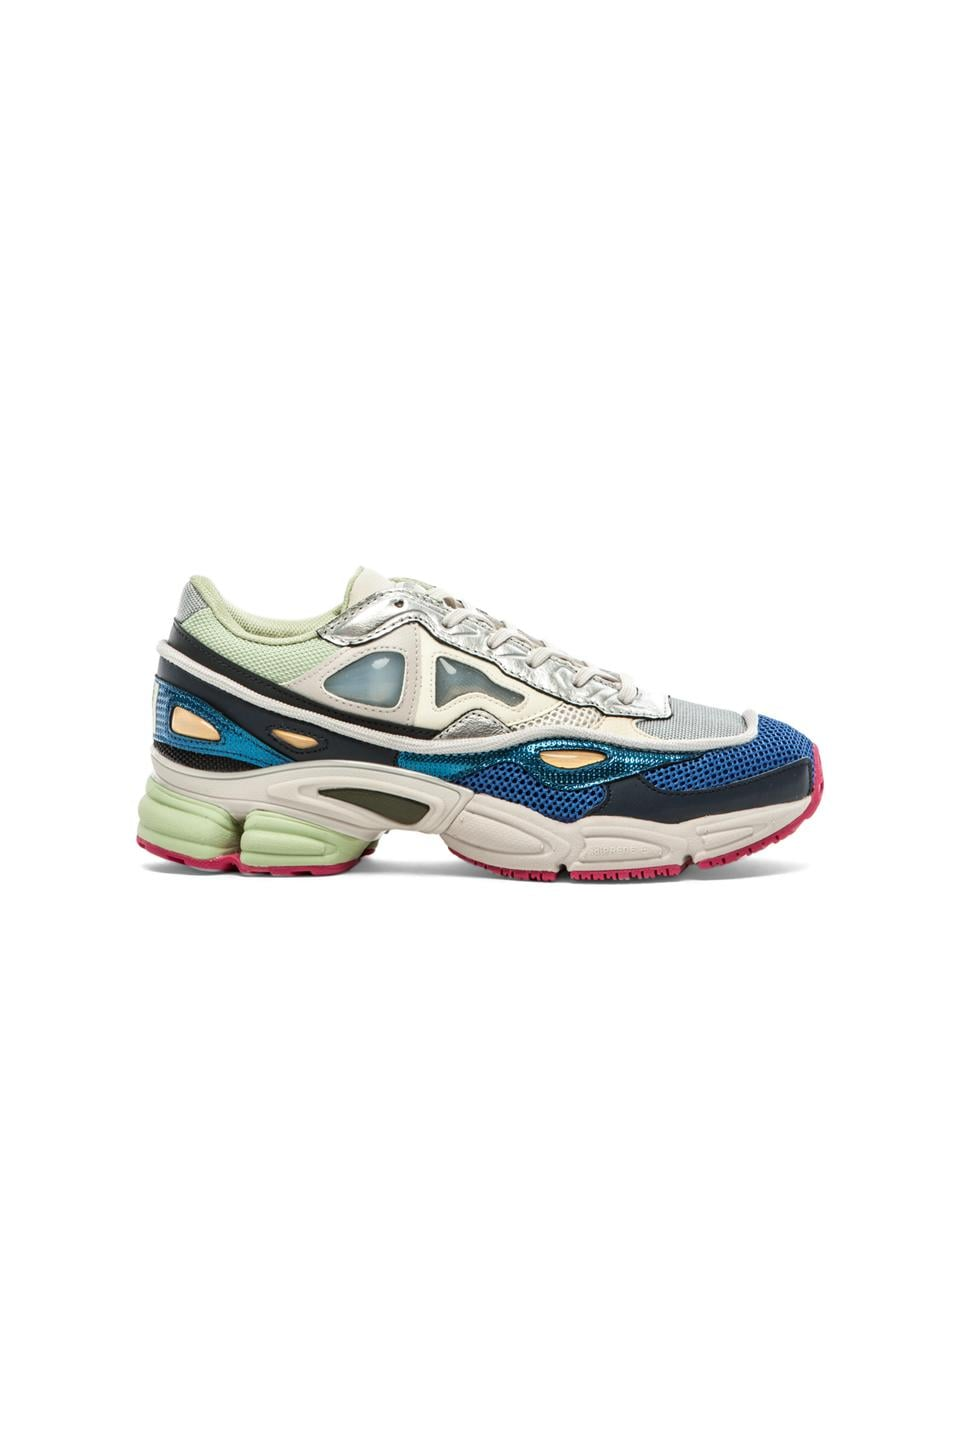 reputable site ea145 65826 adidas by Raf Simons Ozweego 2 in Cream White/ Supply/ Bold ...